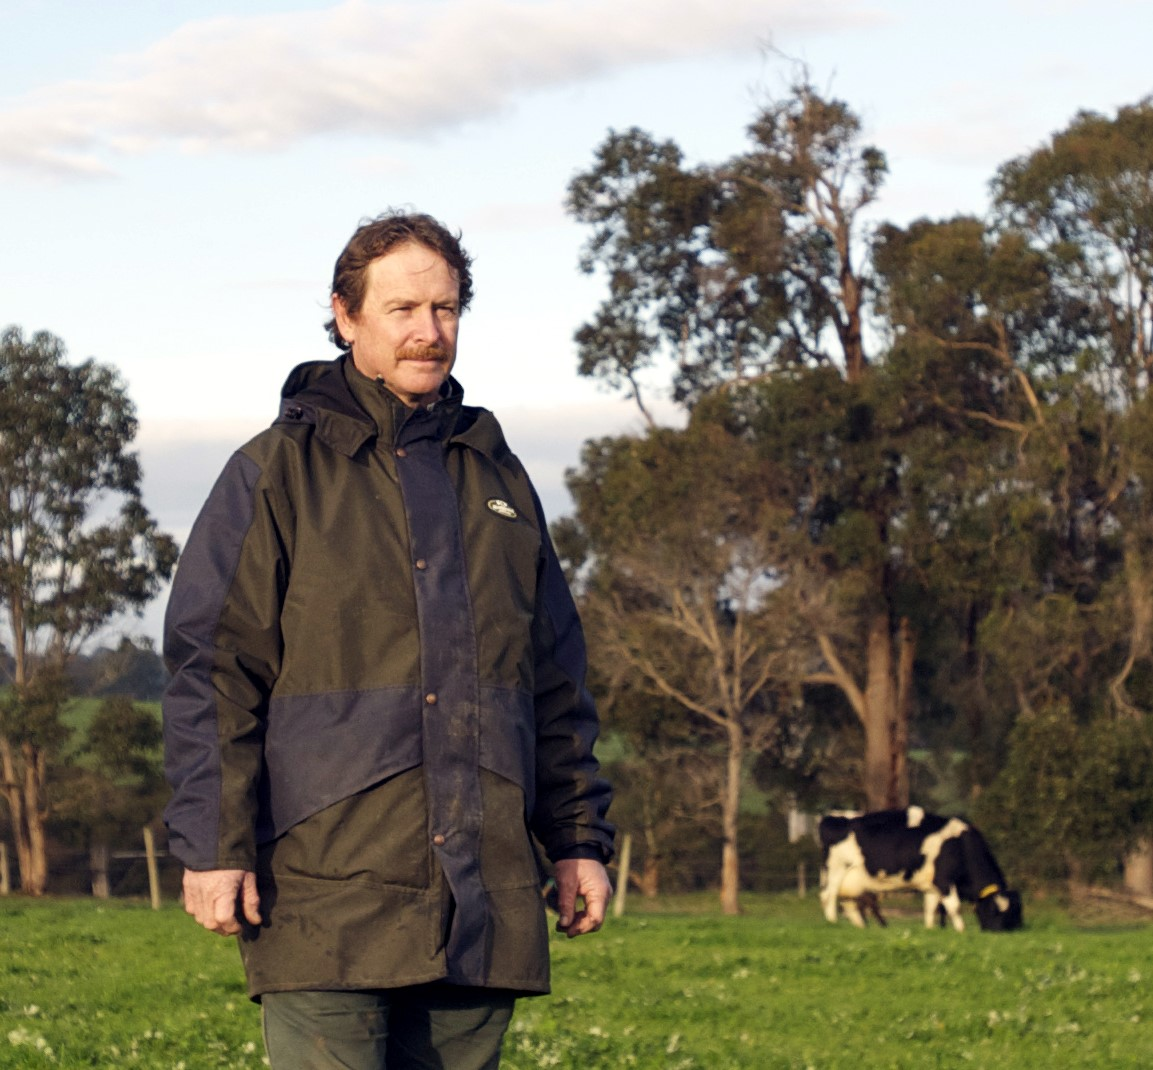 Tim with cows - resized.jpg